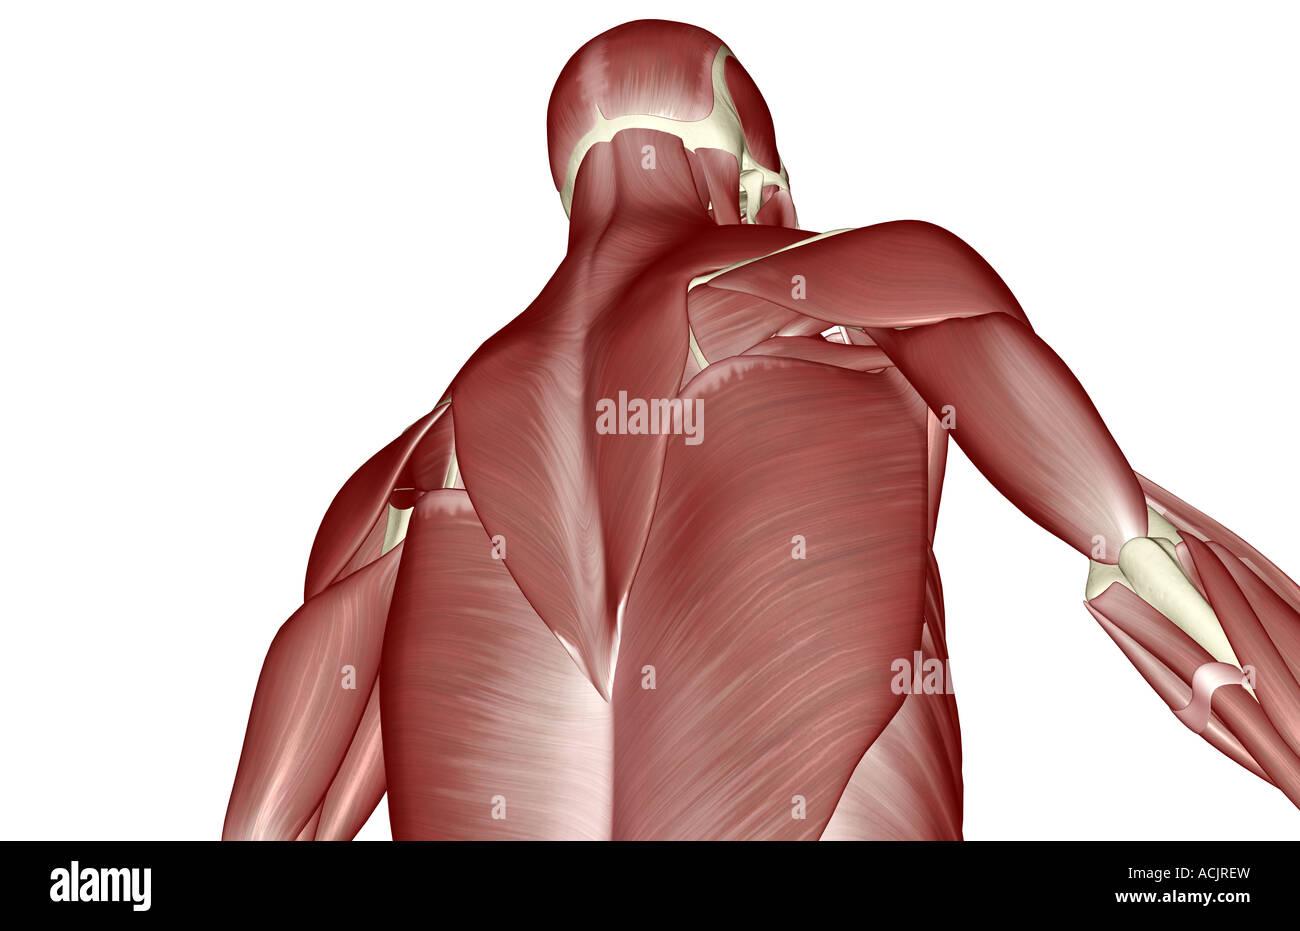 The Muscles Of The Upper Body Stock Photo 13172832 Alamy